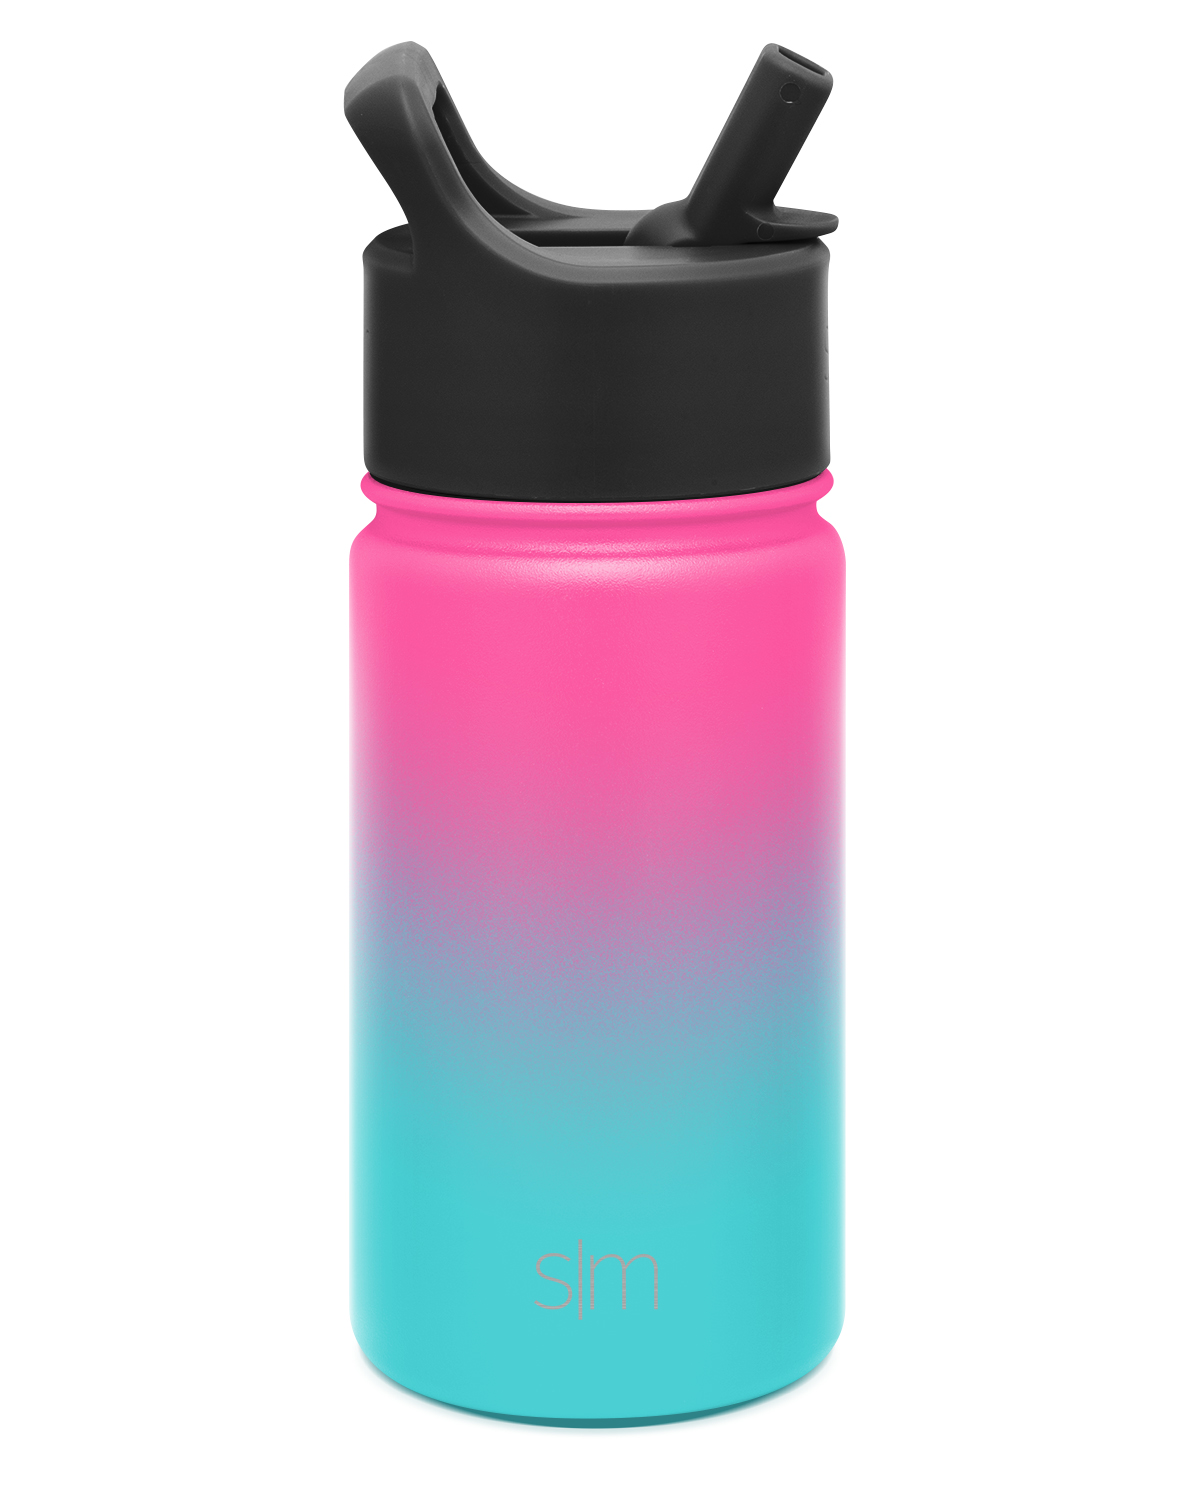 Simple-Modern-Summit-Water-Bottle-with-Straw-Lid-Vacuum-Insulated-Kid-039-s-Cup thumbnail 18